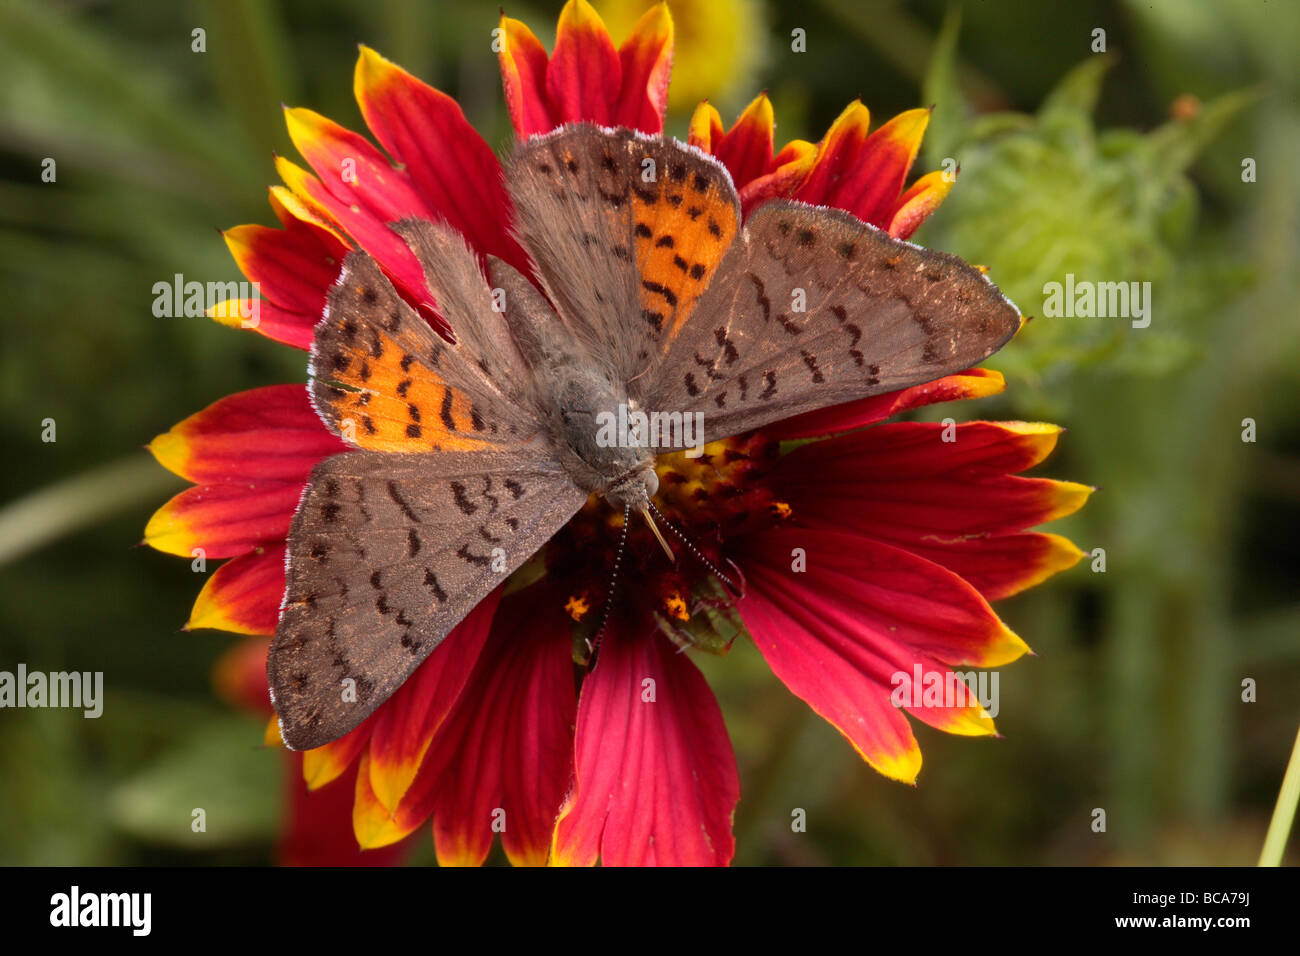 An ares metalmark feeds on a flower - Stock Image